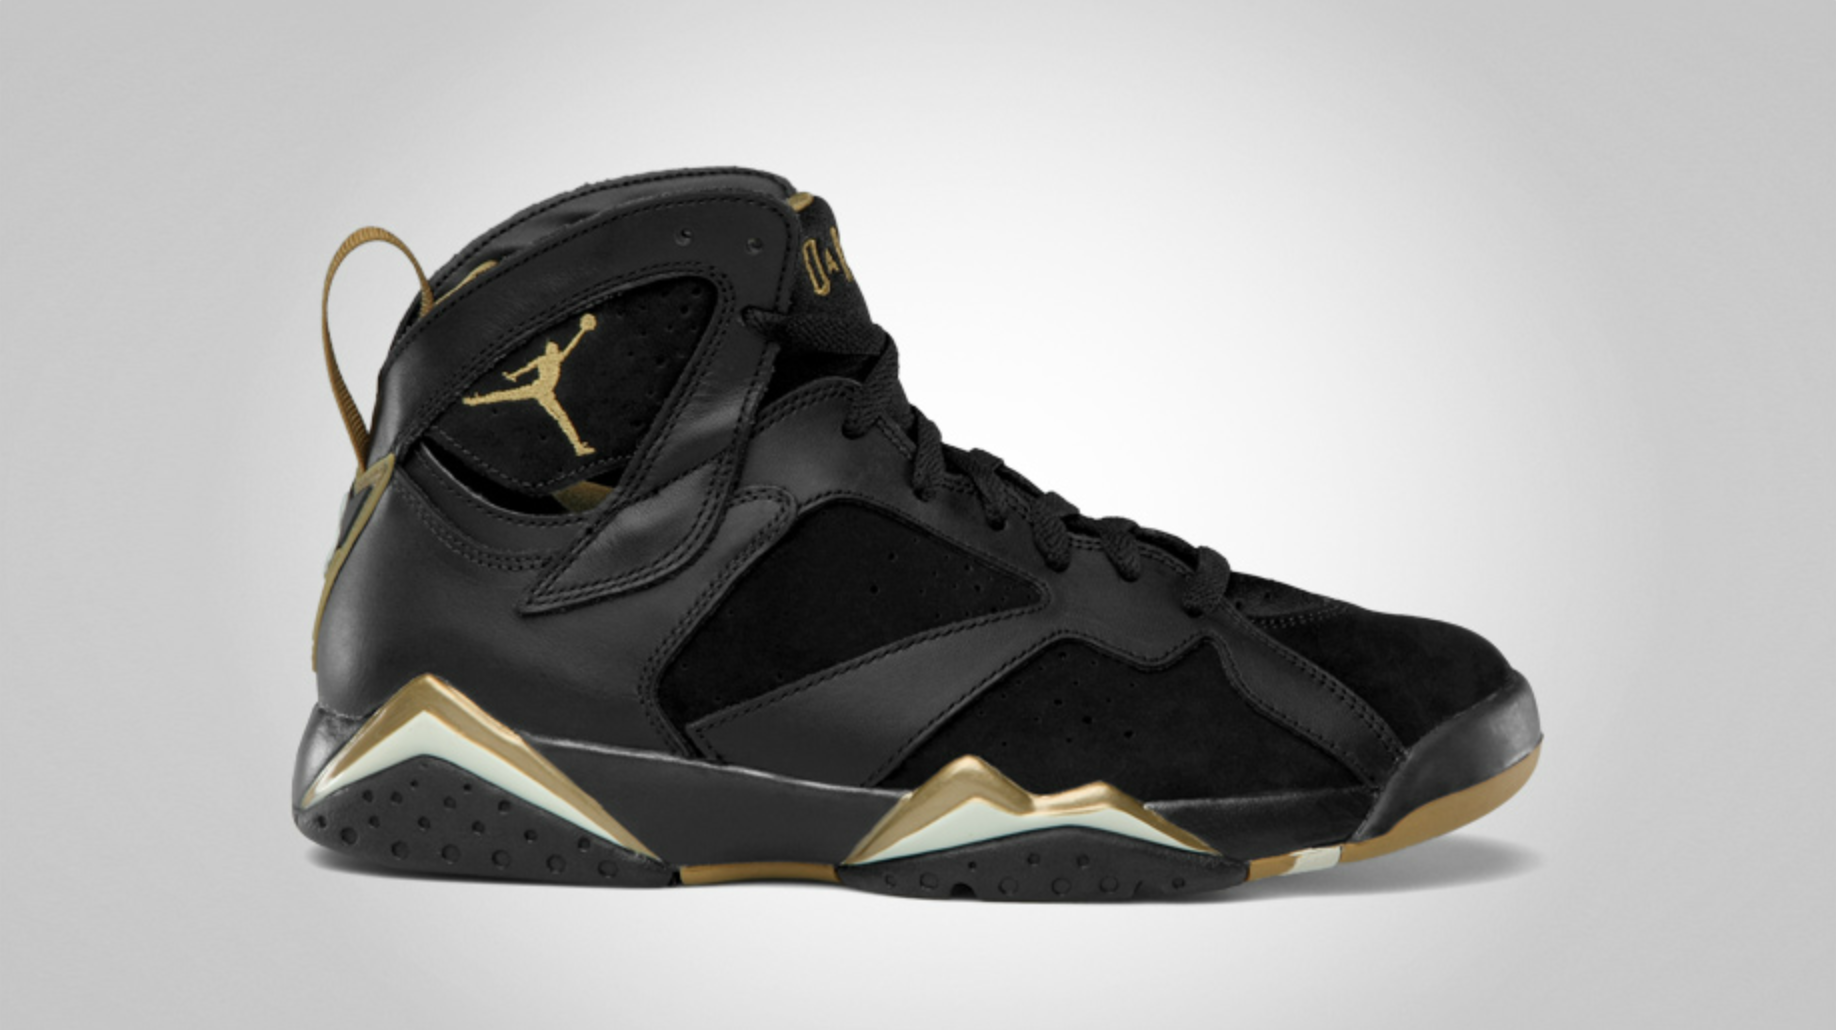 Air Jordan 7 Golden Moments - Official Images